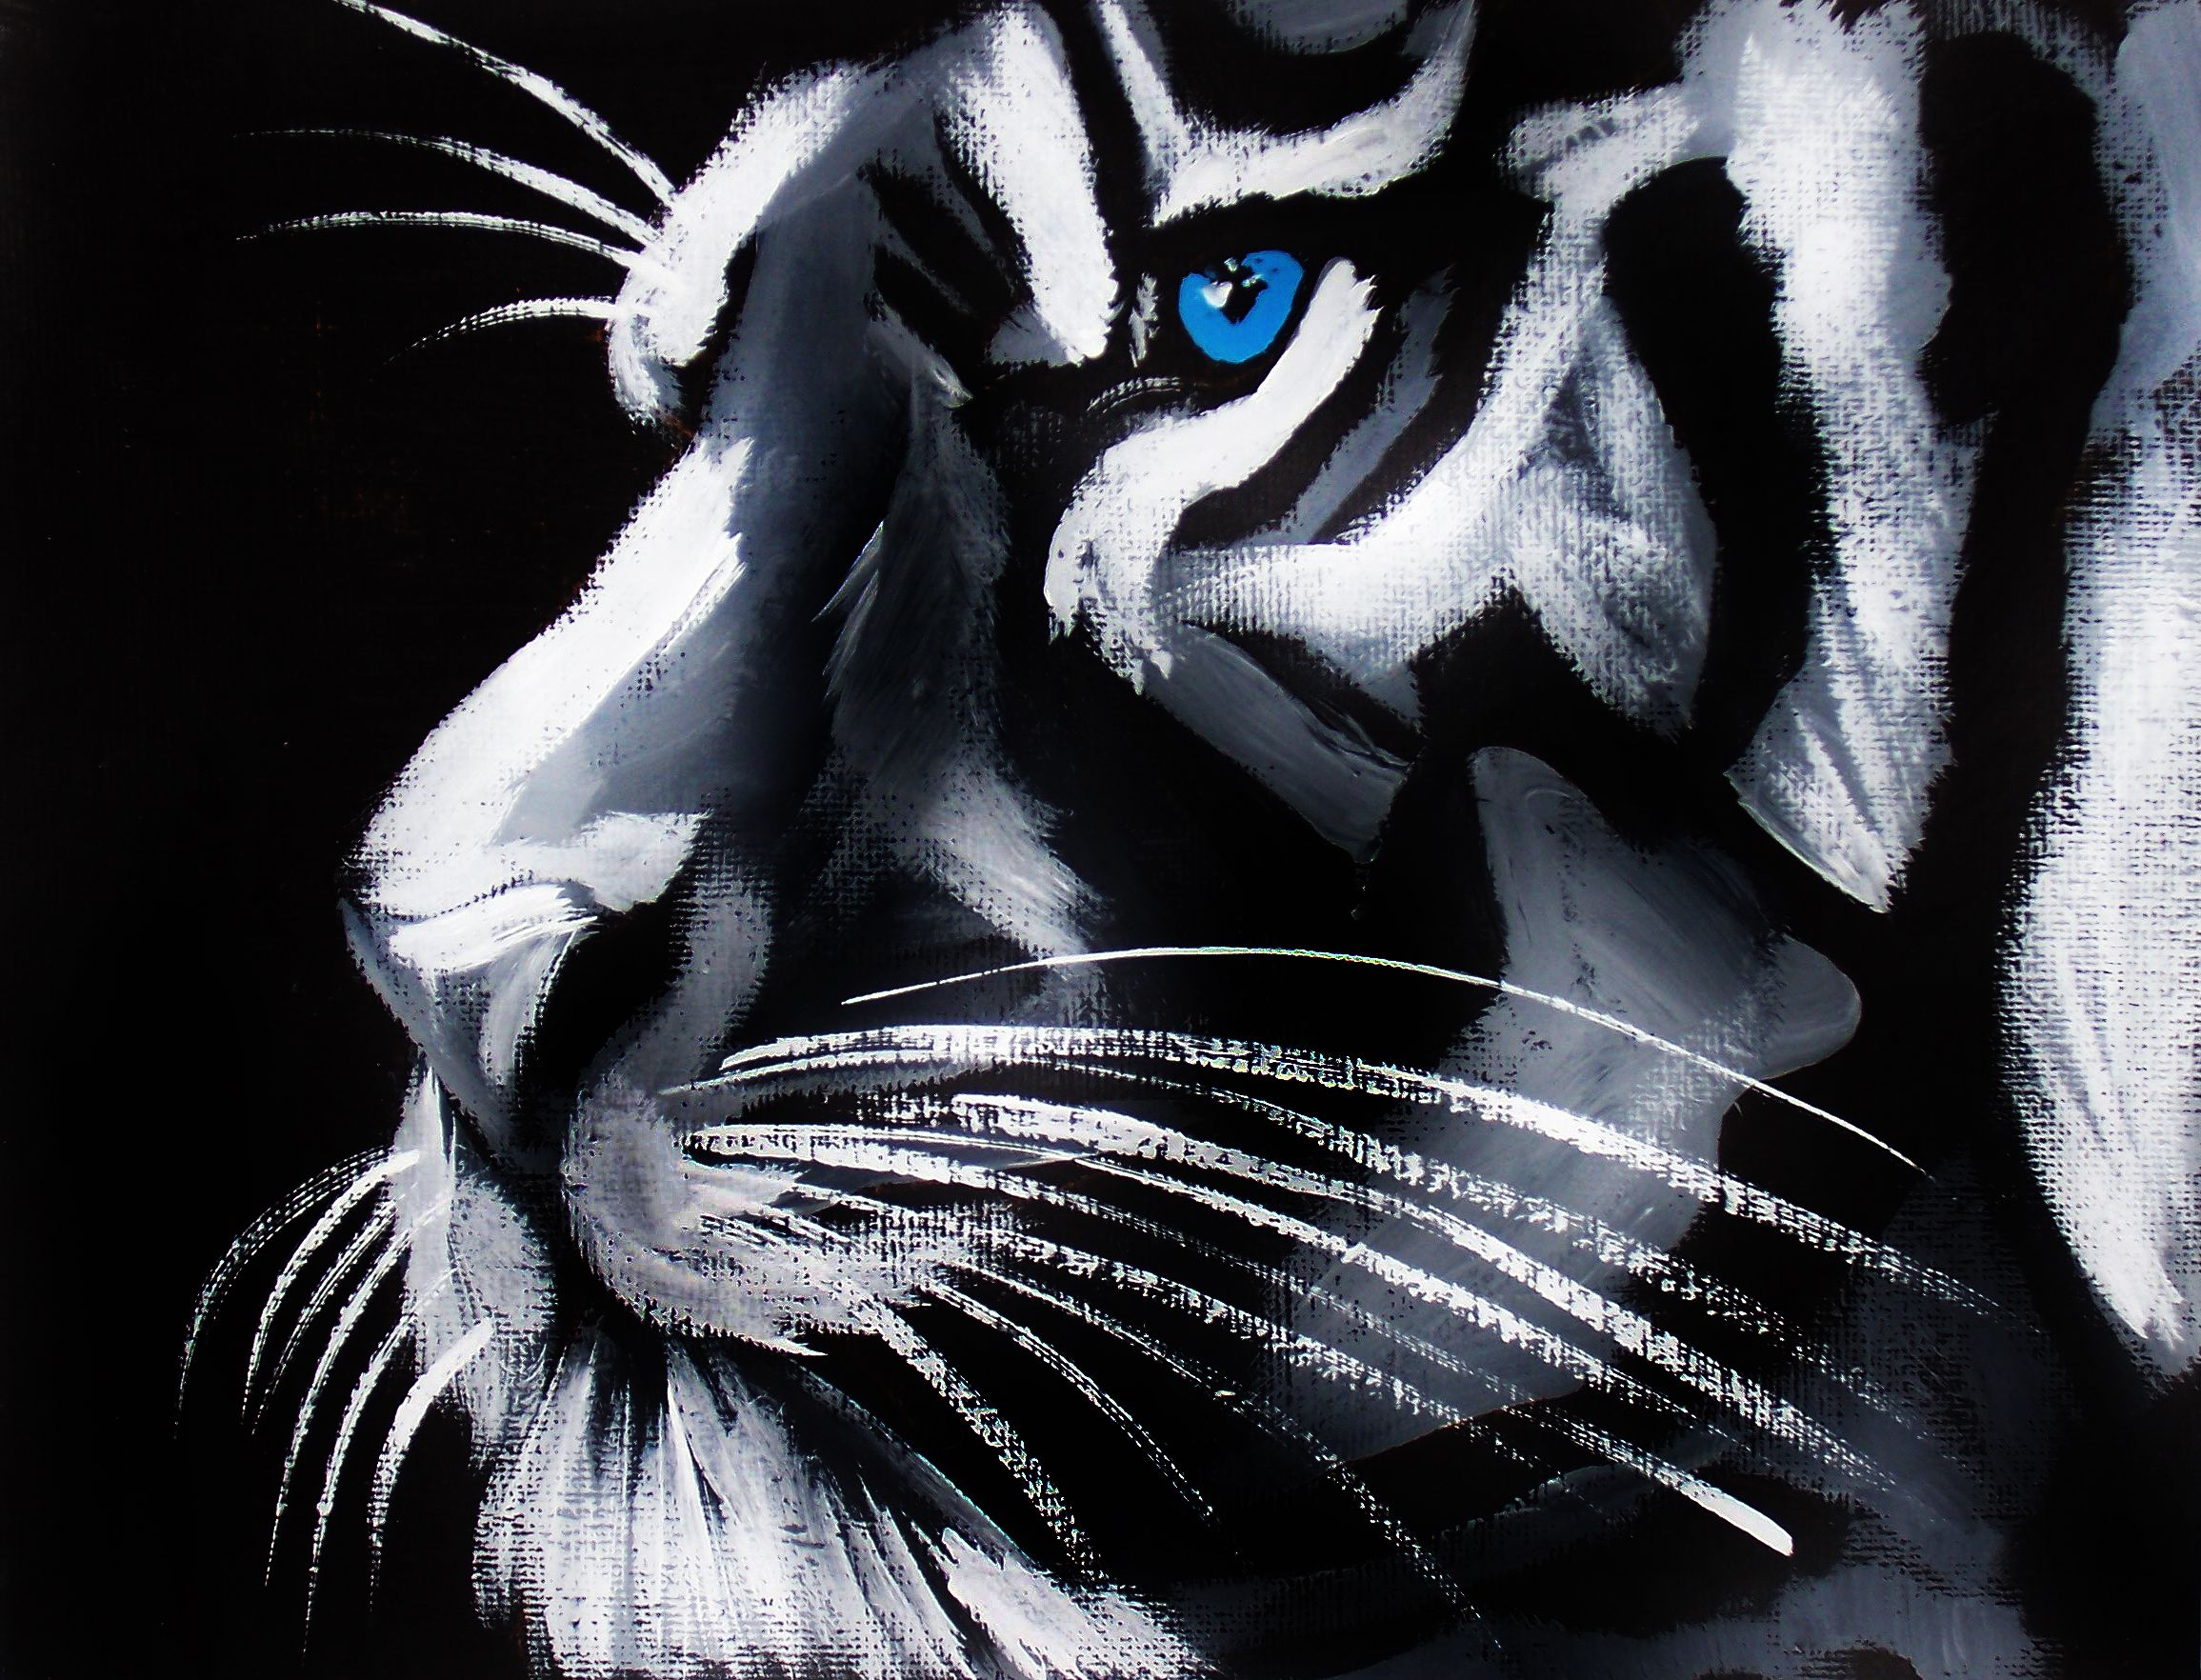 Love white tigers and this is a beautiful painting